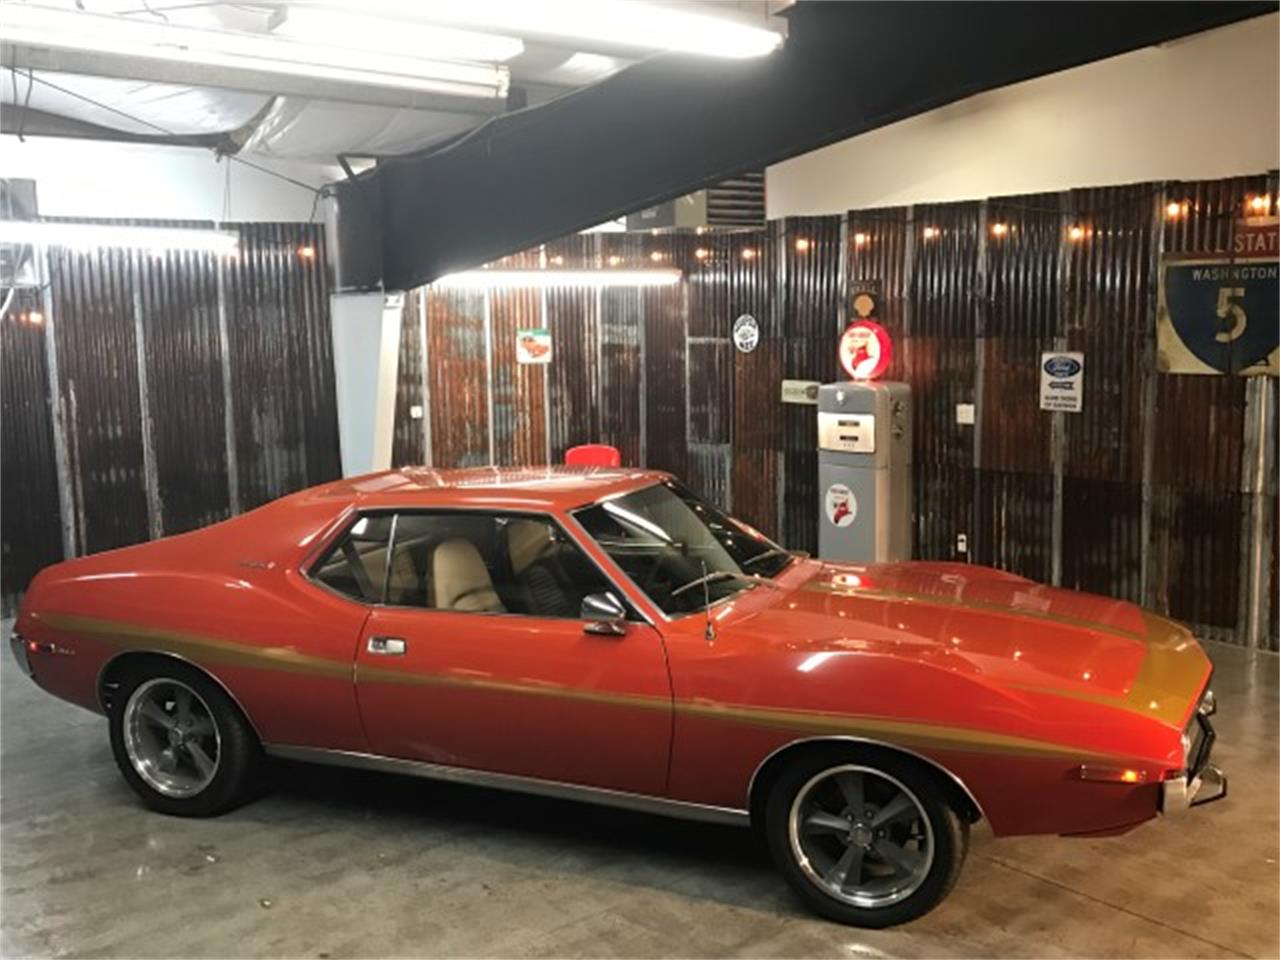 Large Picture of 1972 AMC Javelin located in SHERWOOD Oregon - $15,500.00 Offered by Cool Classic Rides LLC - ME29